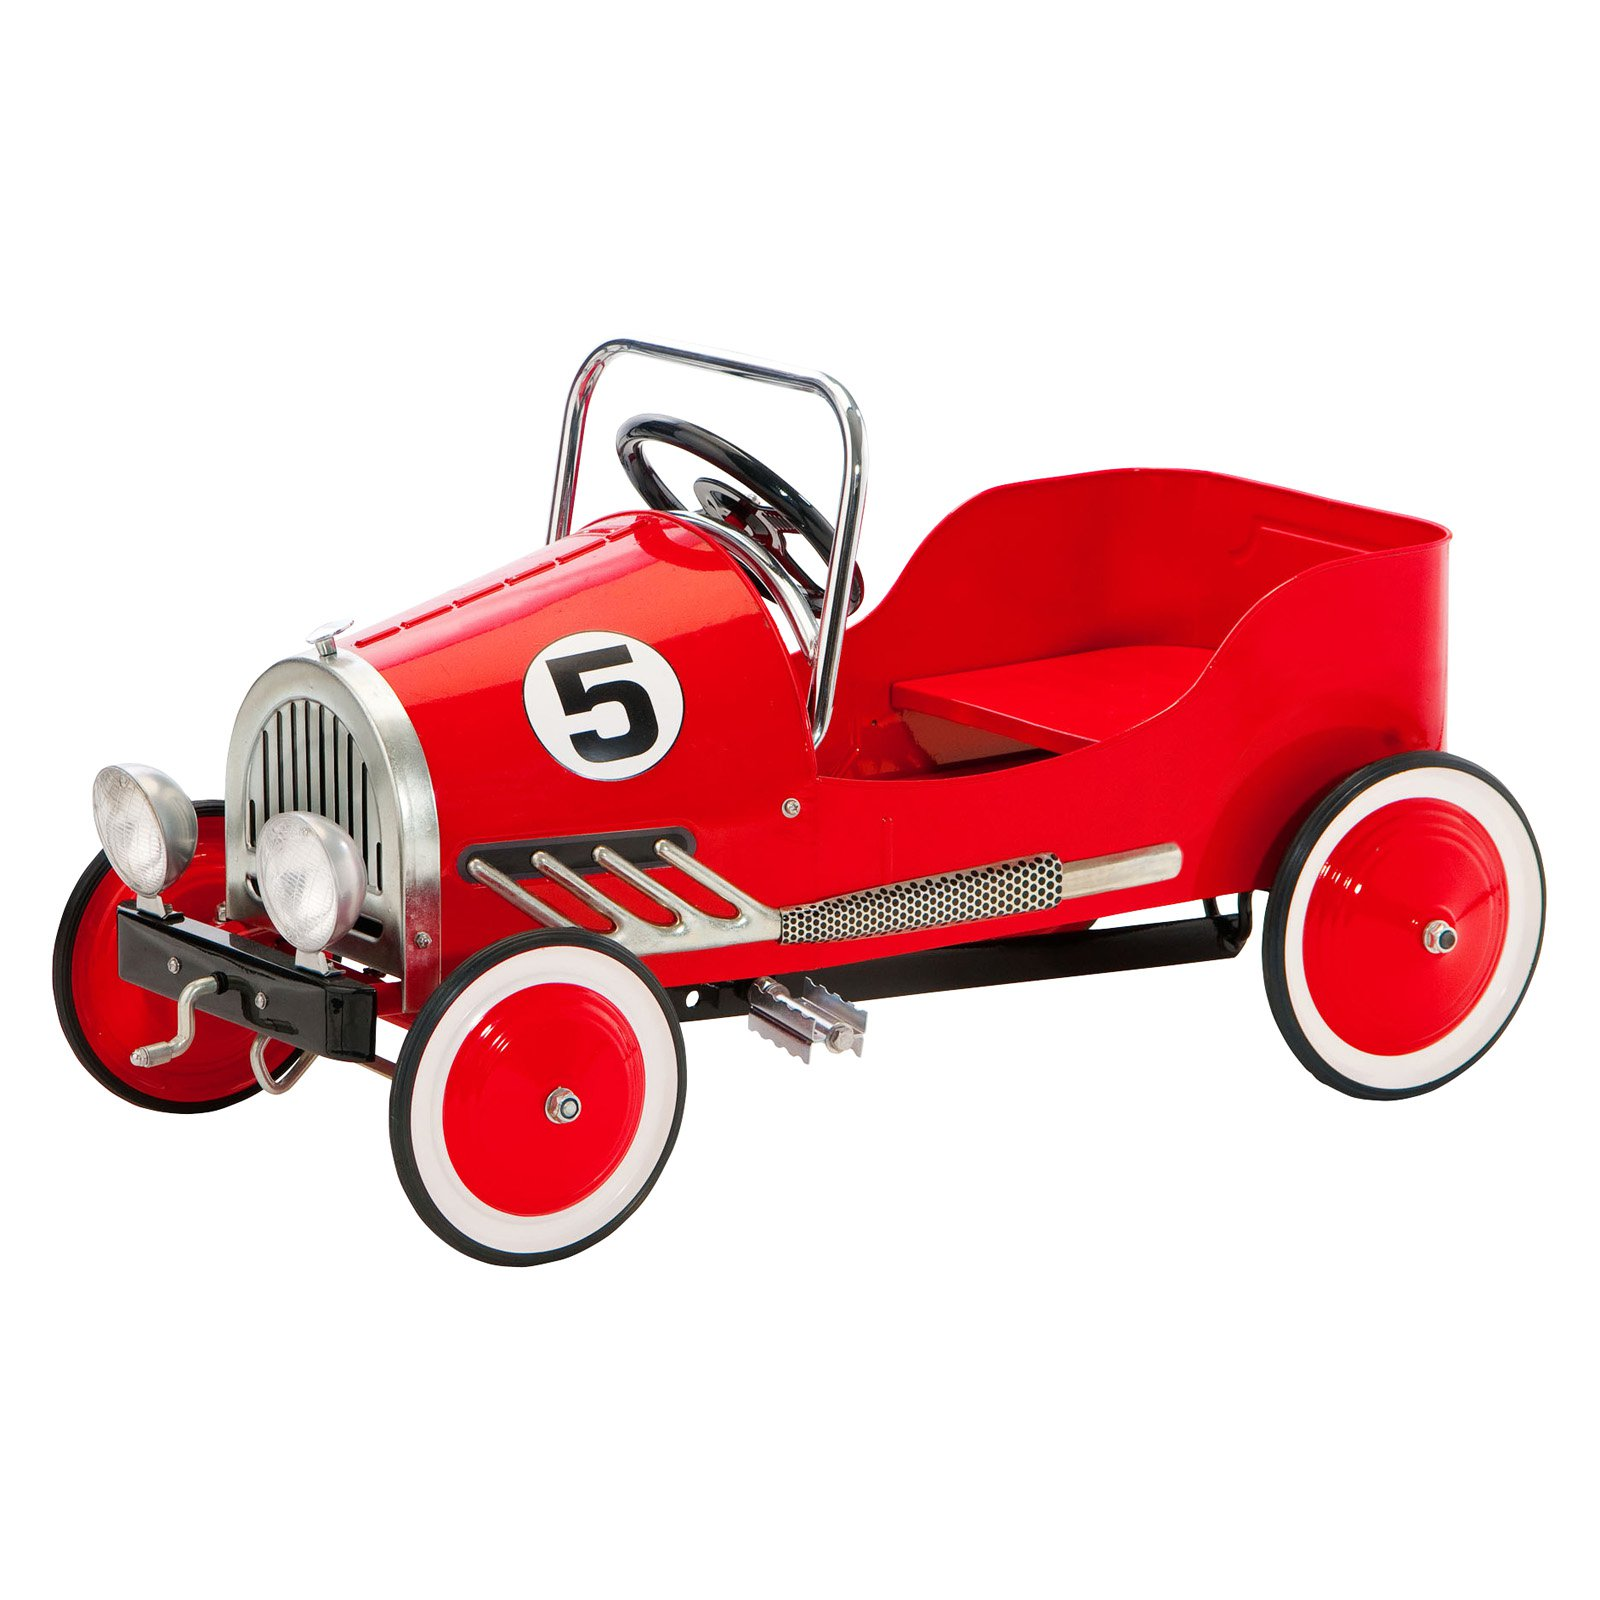 Morgan Cycle Vintage Retro Pedal Car Riding Toy - Red